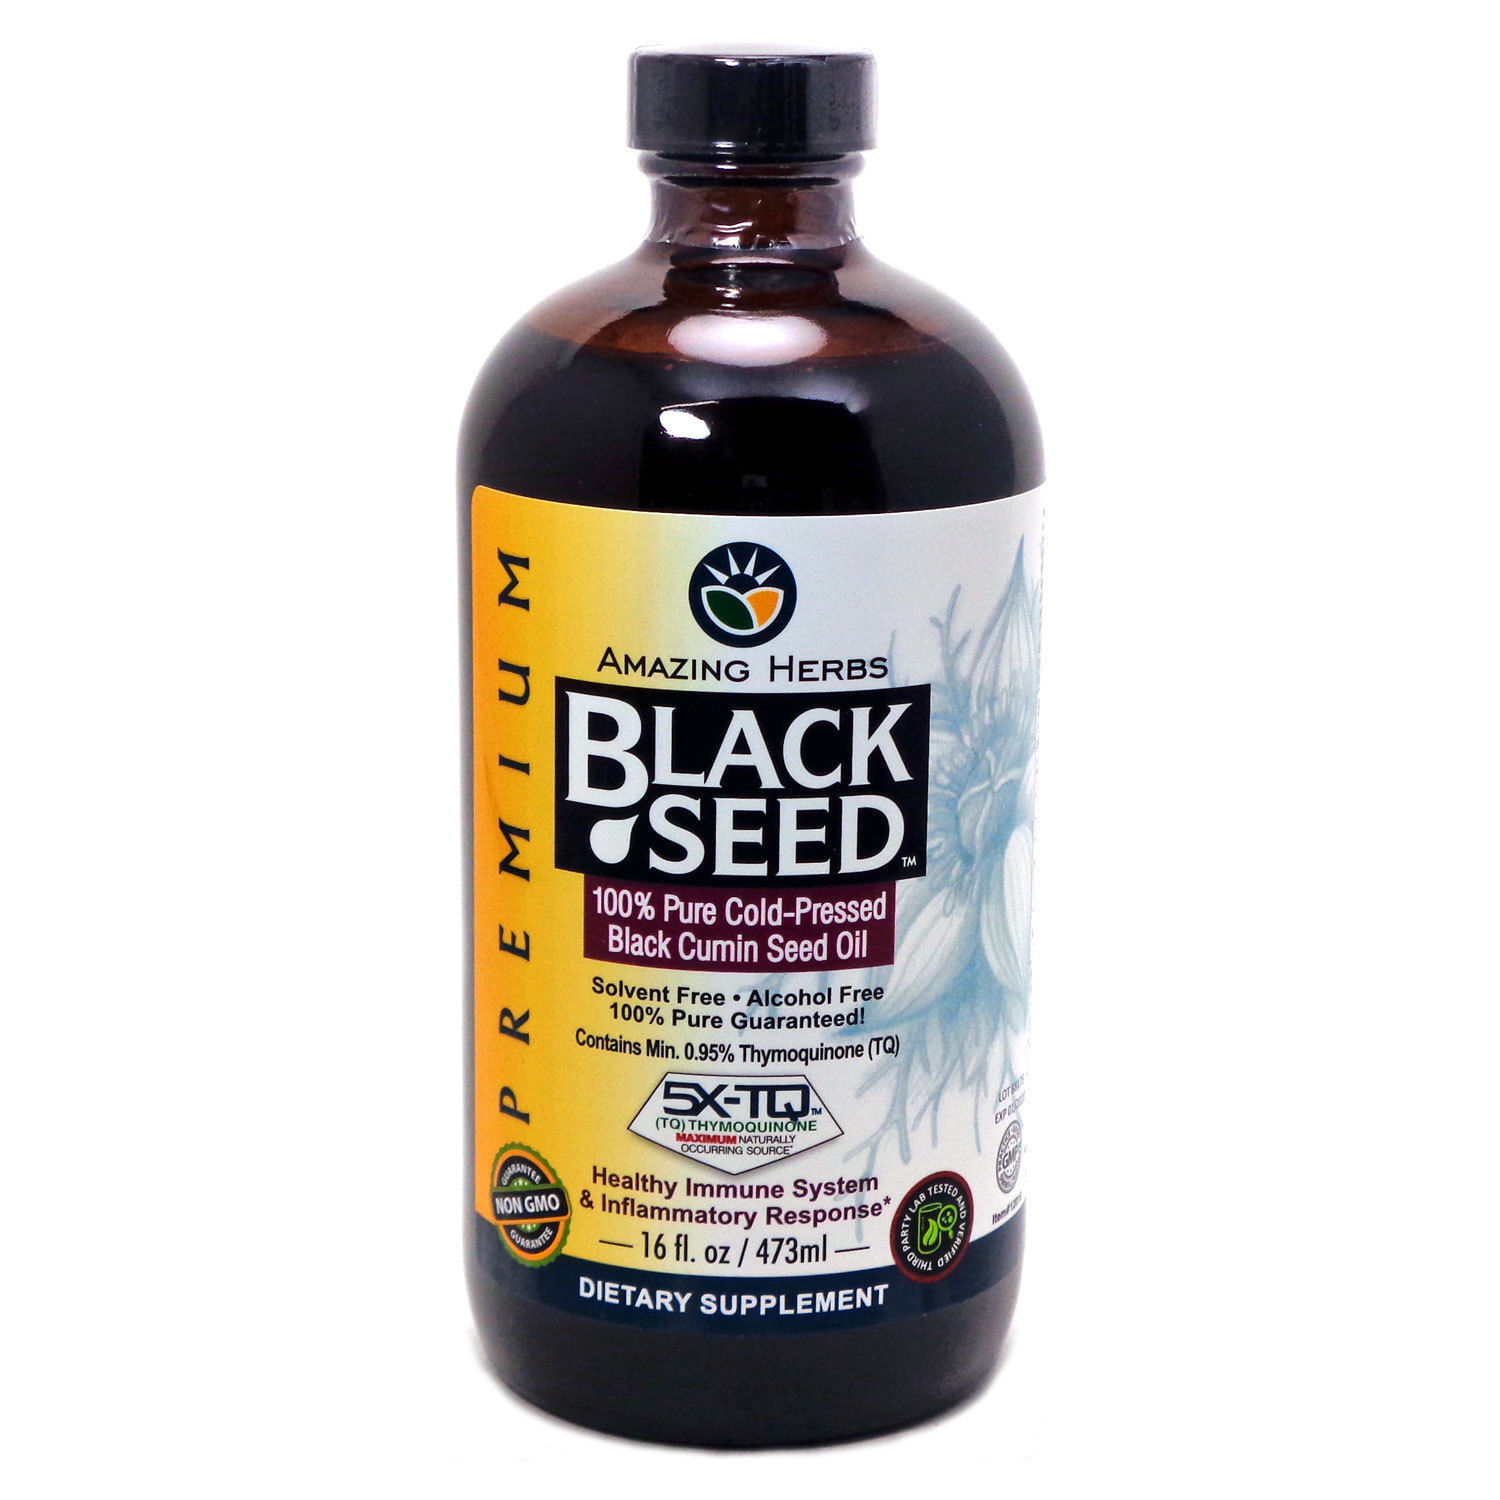 Amazing Herbs Cold-pressed Black Cumin Seed Oil For Immun...